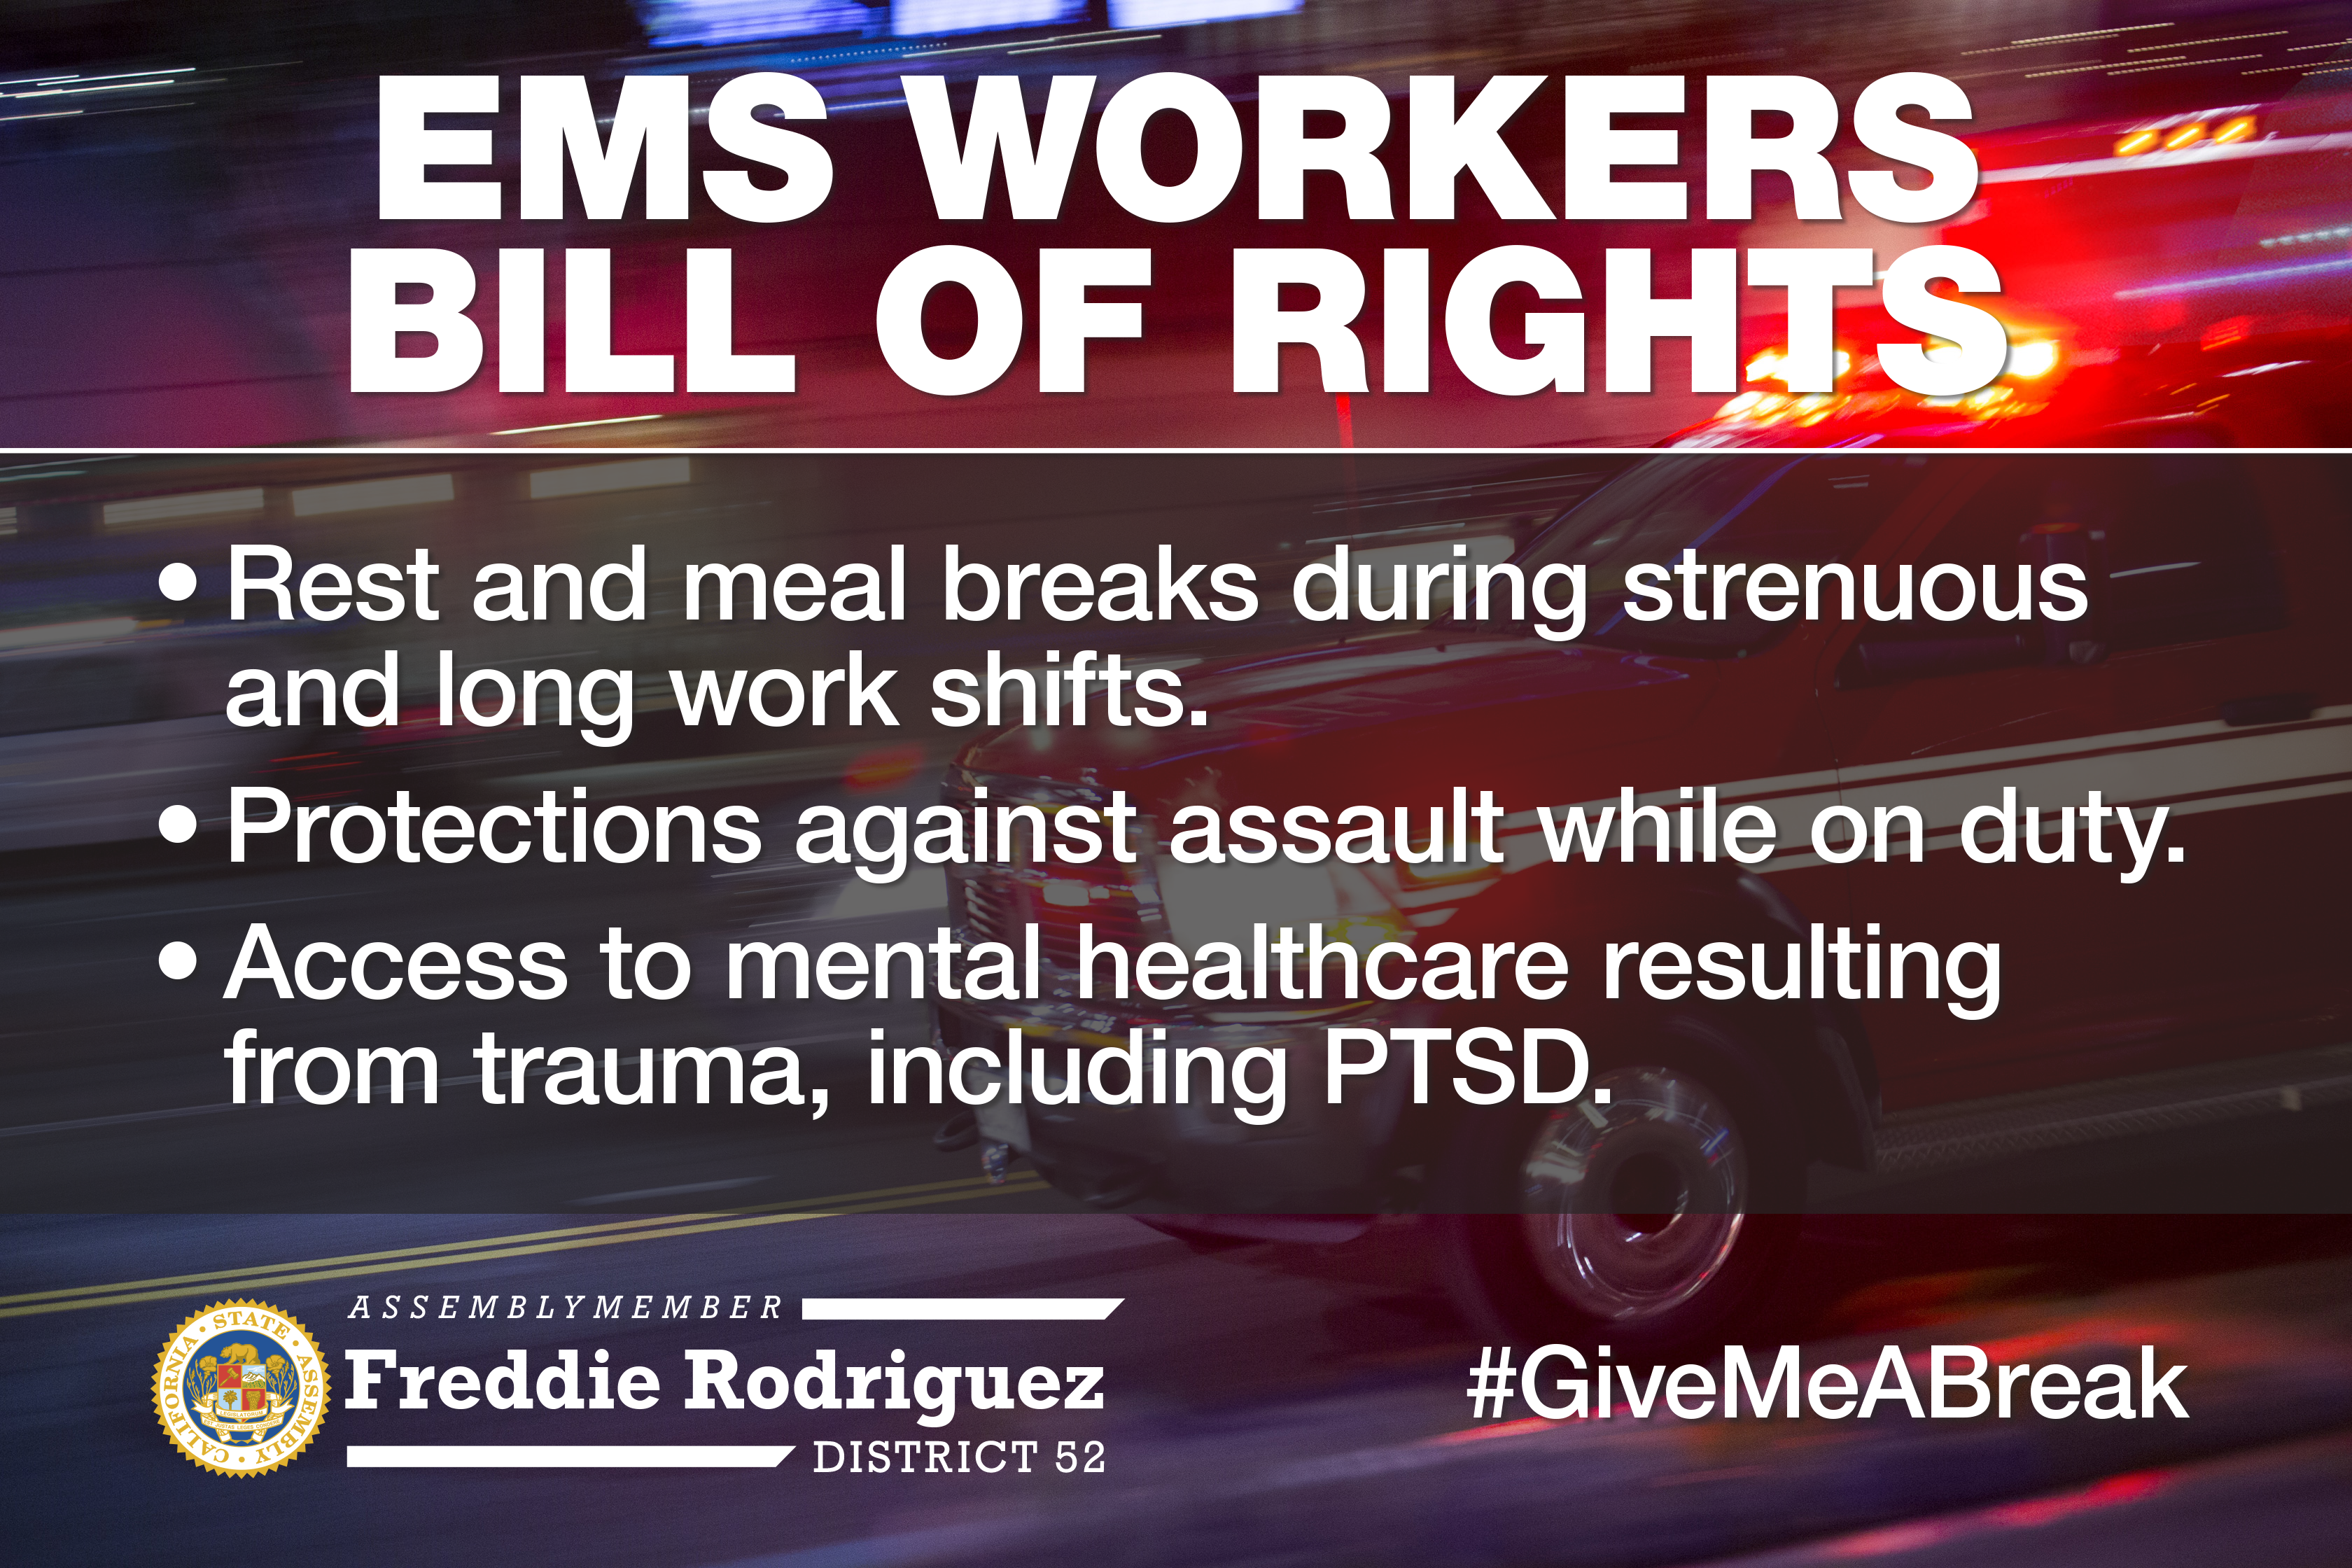 EMS Workers Bill of Rights